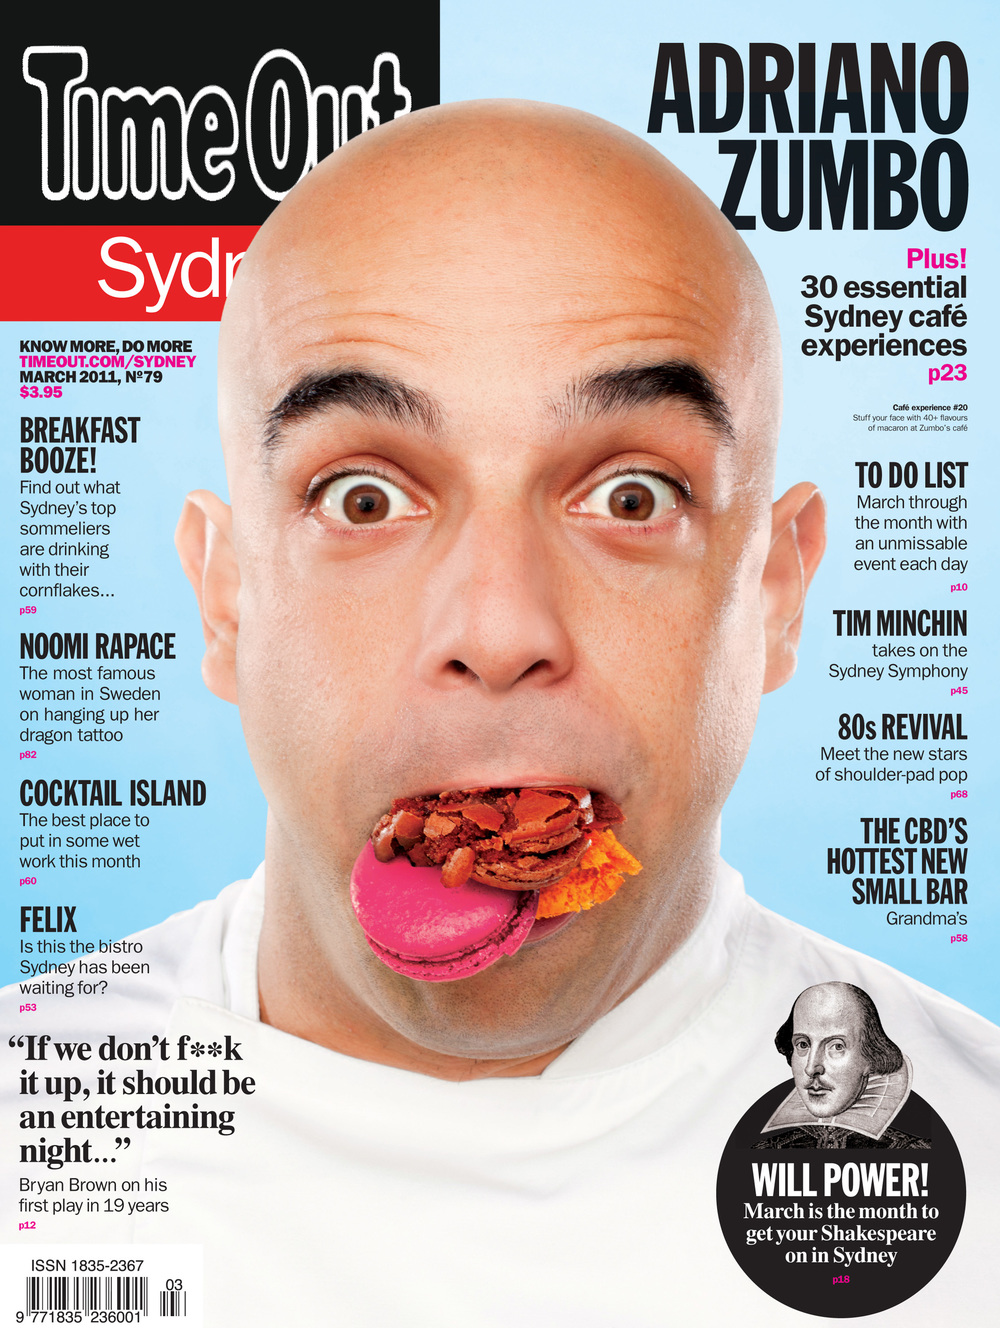 Time Out Sydney - Adriano Zumbo